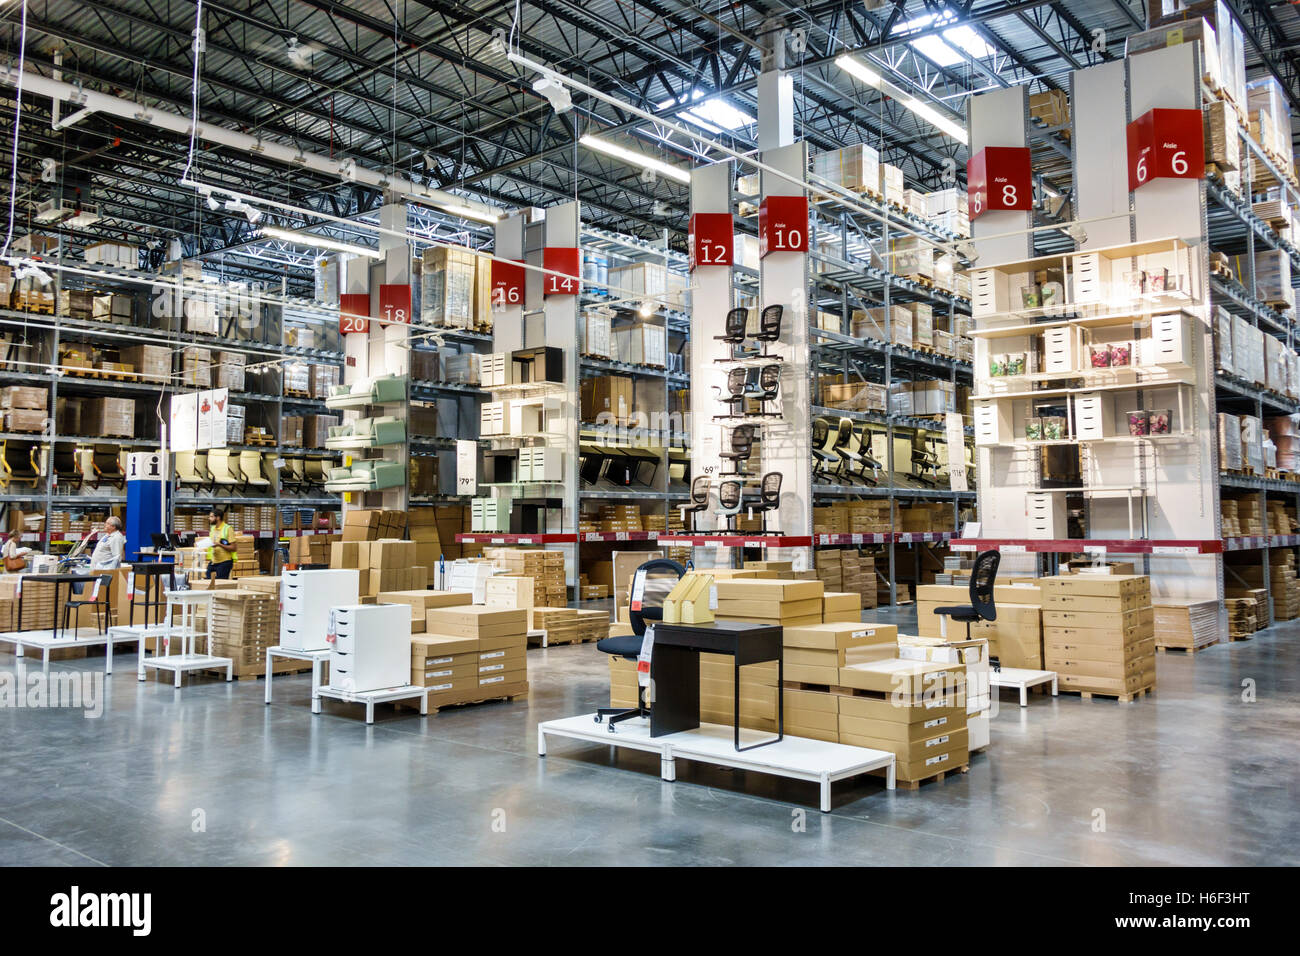 ikea warehouse stock photos ikea warehouse stock images alamy. Black Bedroom Furniture Sets. Home Design Ideas